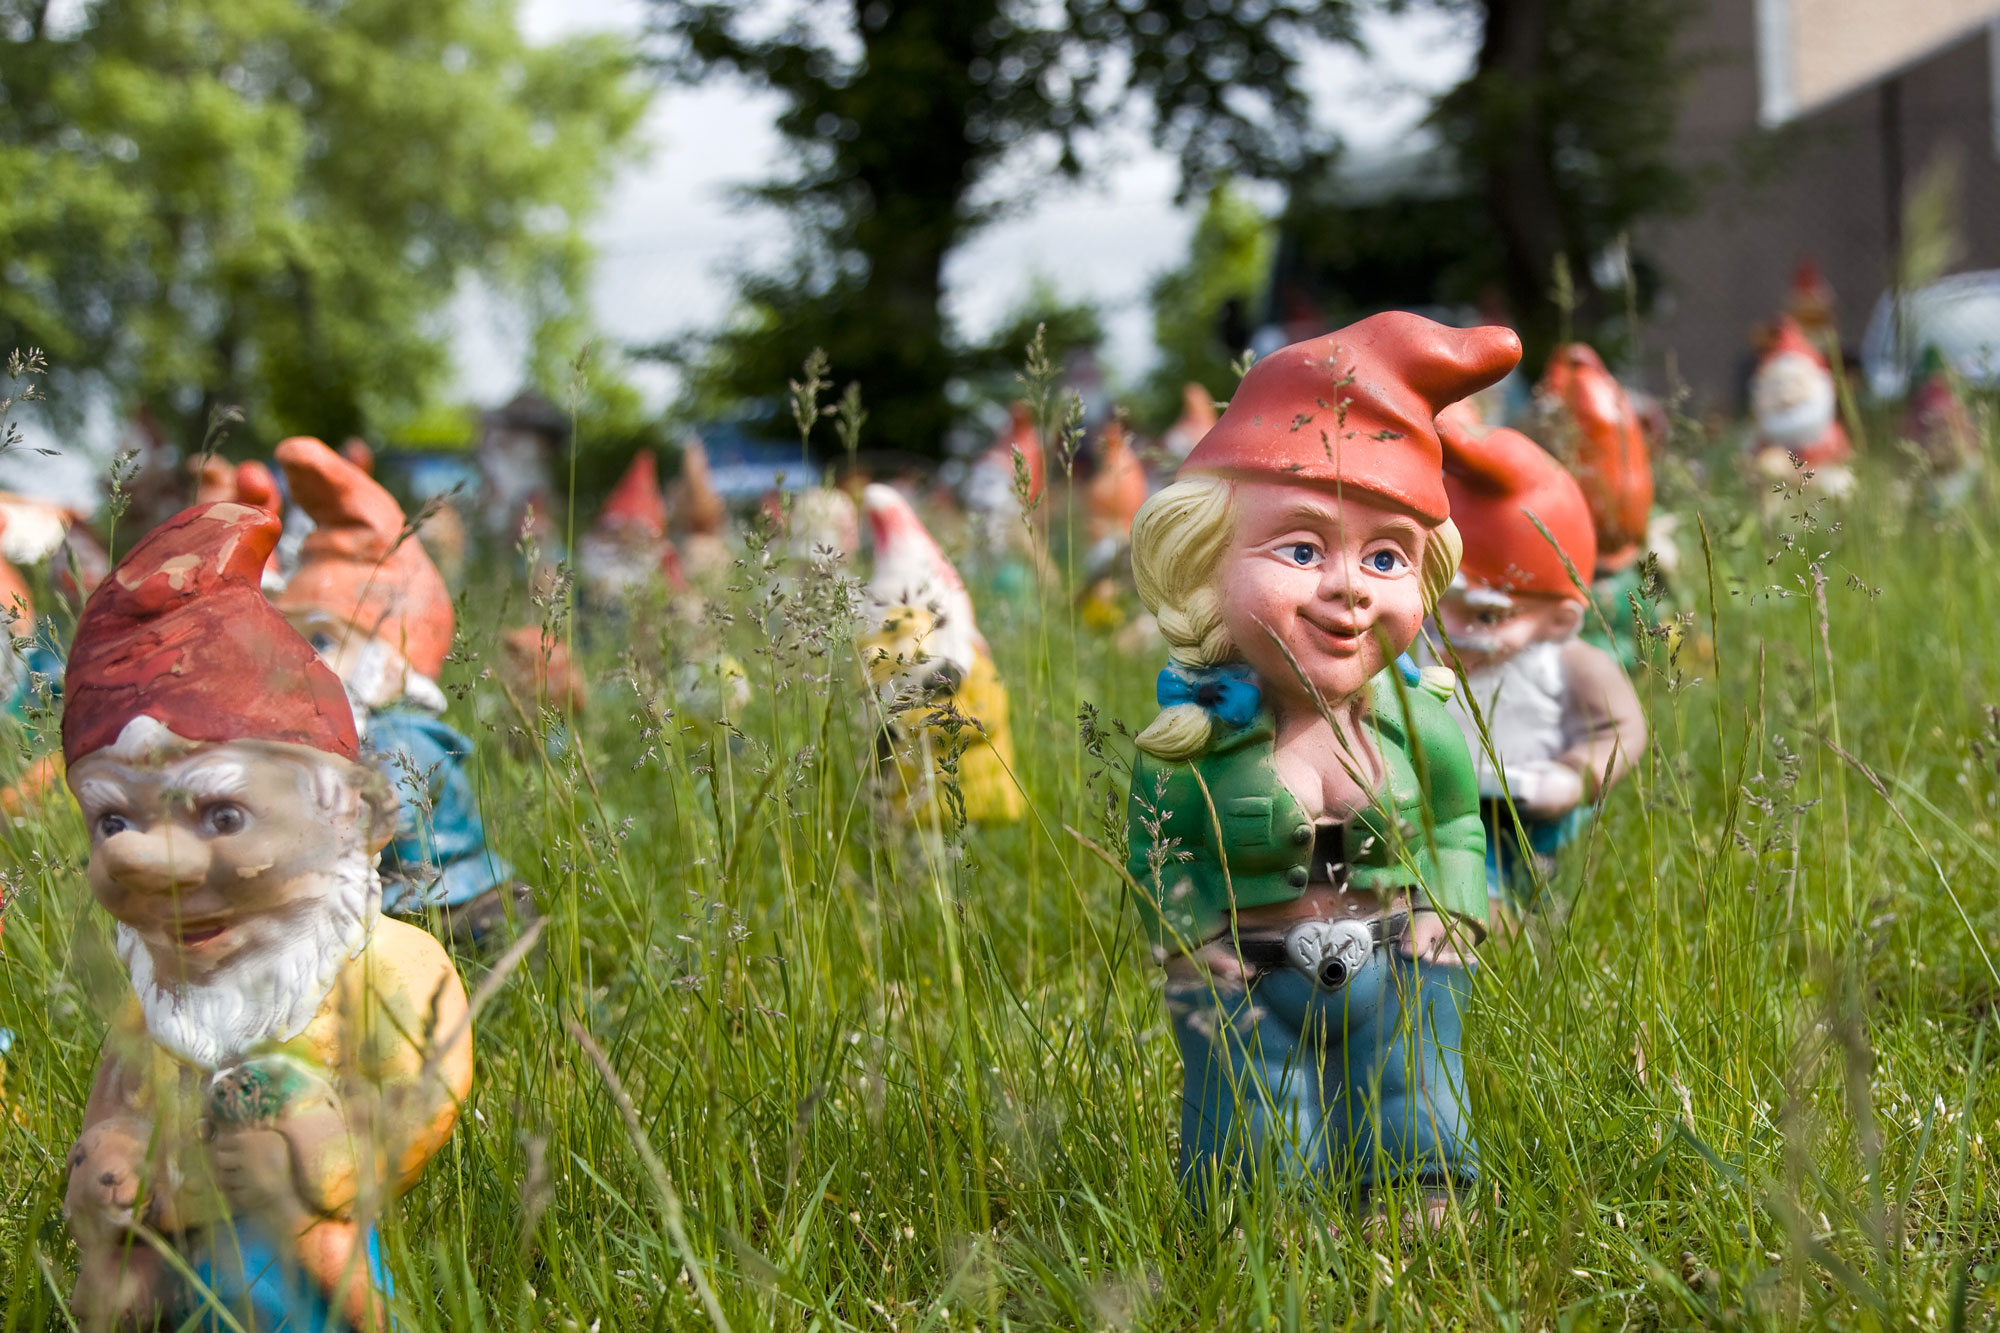 Lots of gnomes, somewhere in Wisconsin